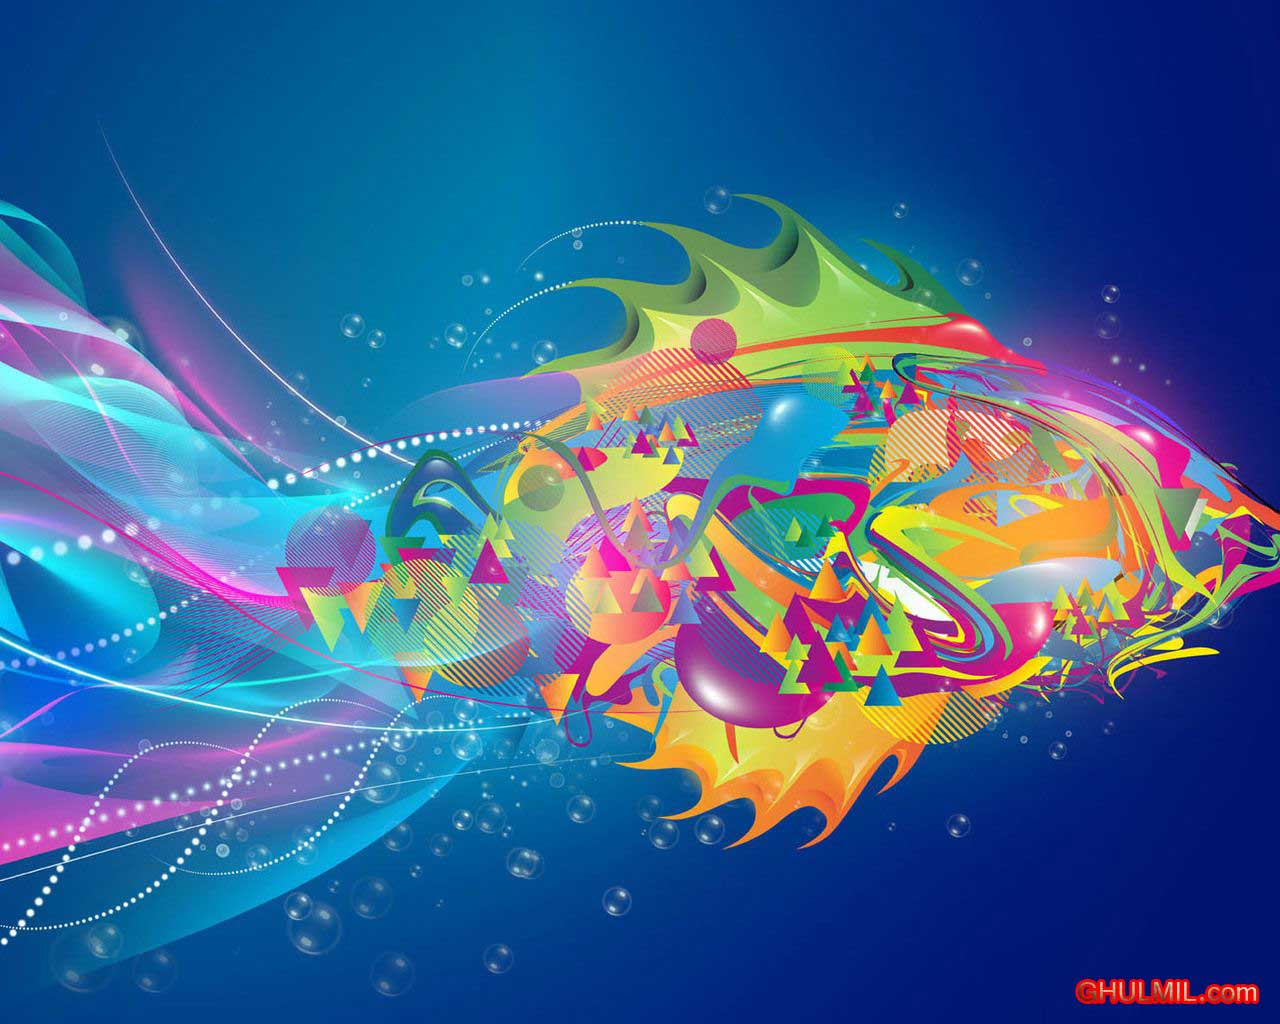 http://1.bp.blogspot.com/-xT849TAInLY/Tcpfw3A7XnI/AAAAAAAACJc/GEha7Iu5VVo/s1600/free-download-colorful-fish-wallpaper.jpg